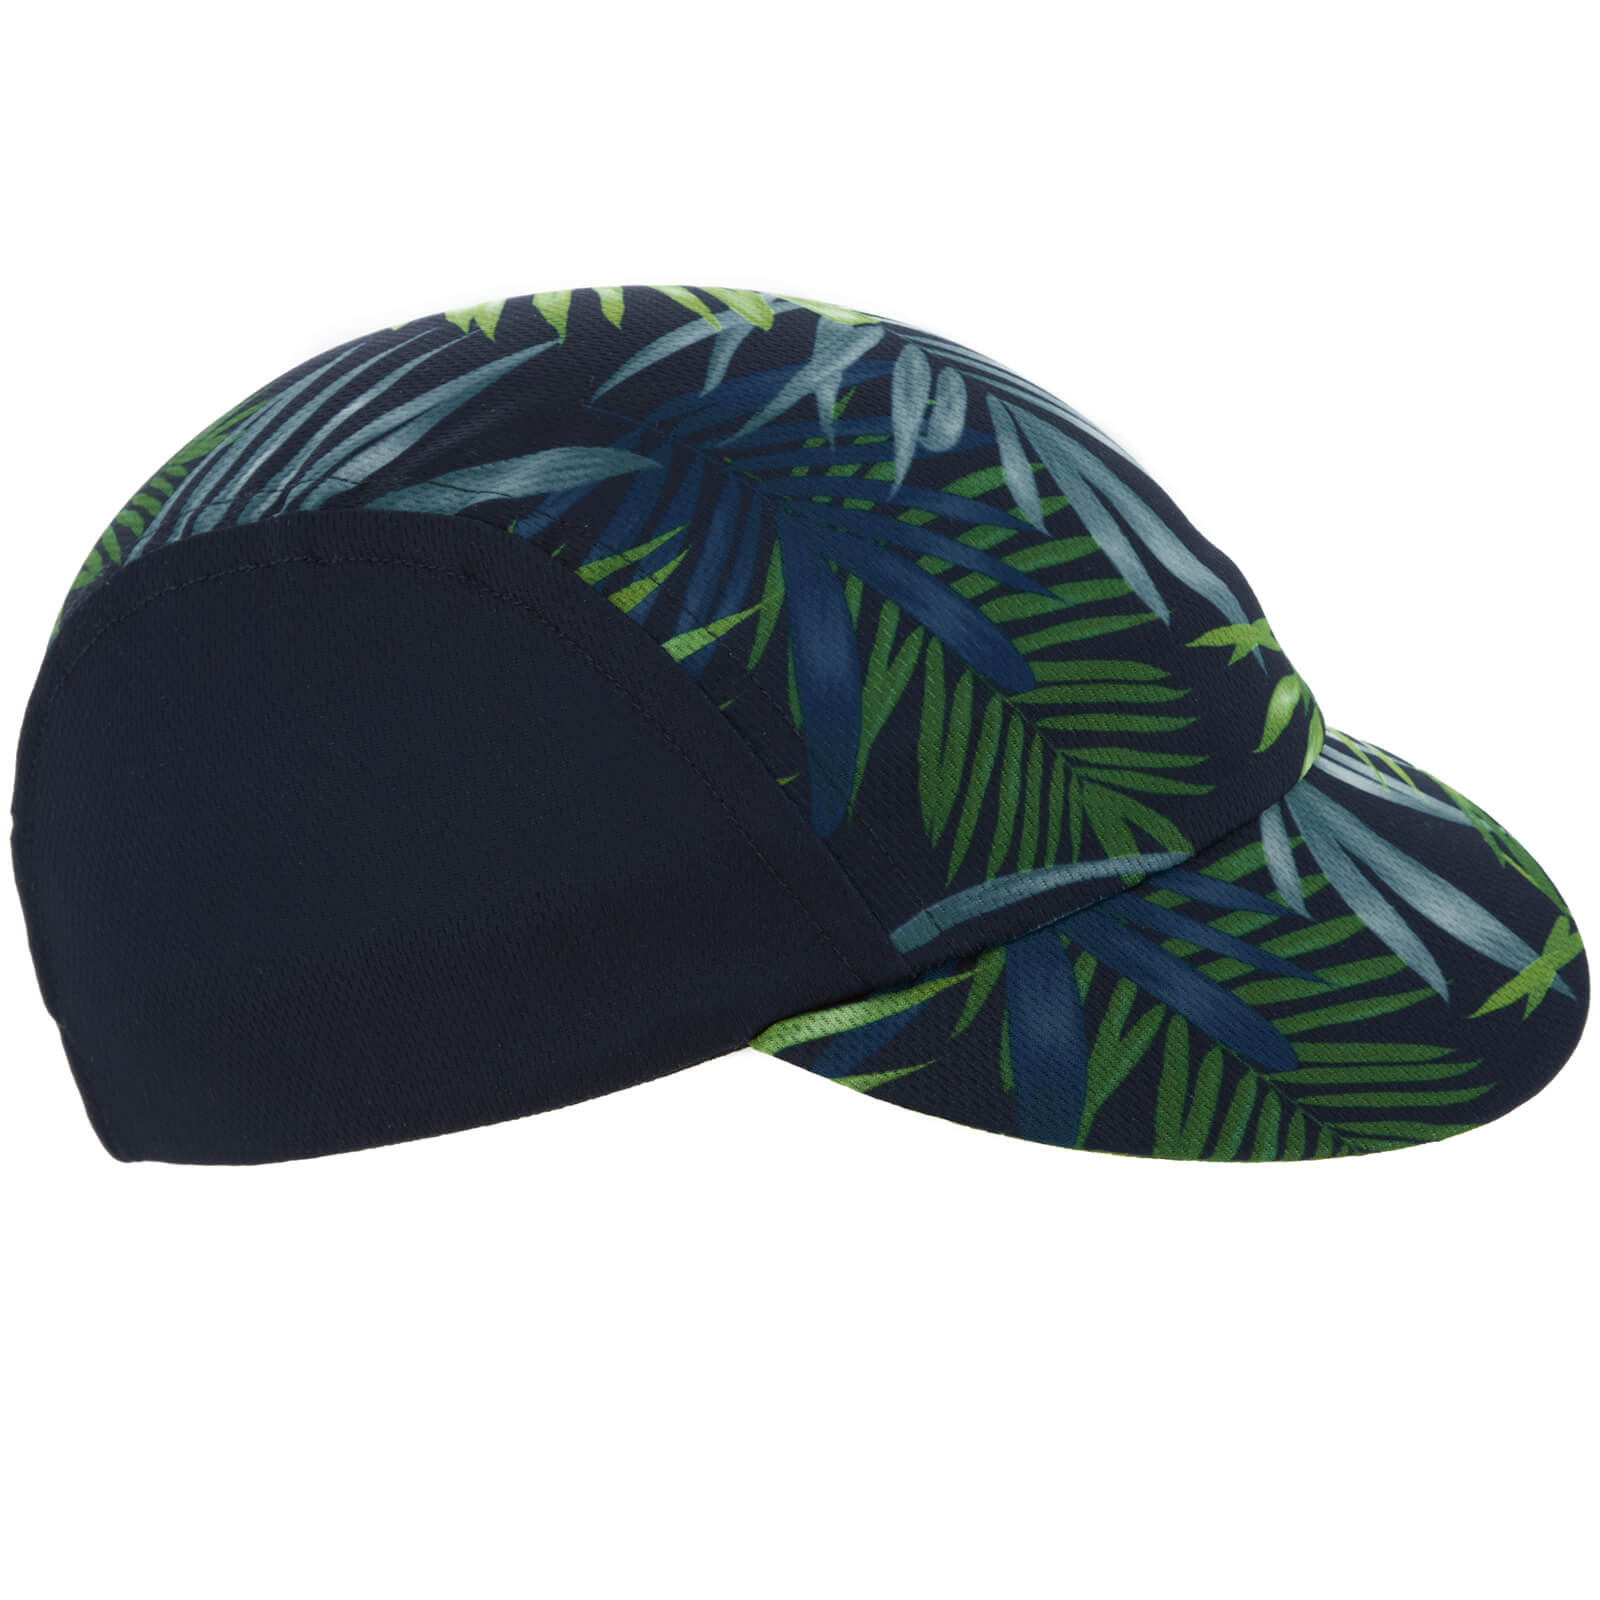 PBK Technical Cycling Cap - Palm